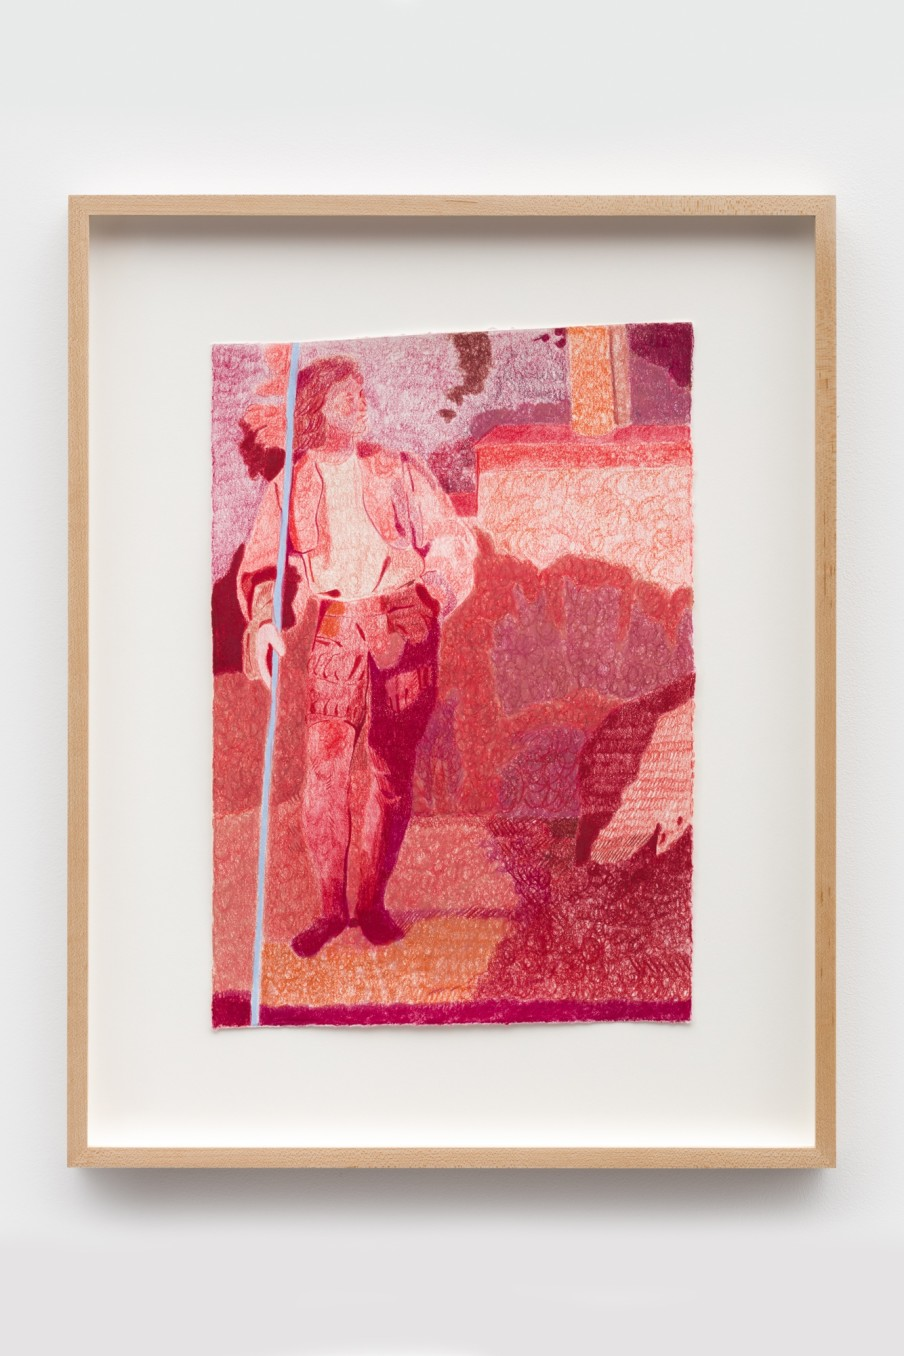 Anthony Cudahy fr the Tempest, 2021 Colored pencil on paper Image: 35.6 x 25.4 cm 14 x 10 in Frame:...